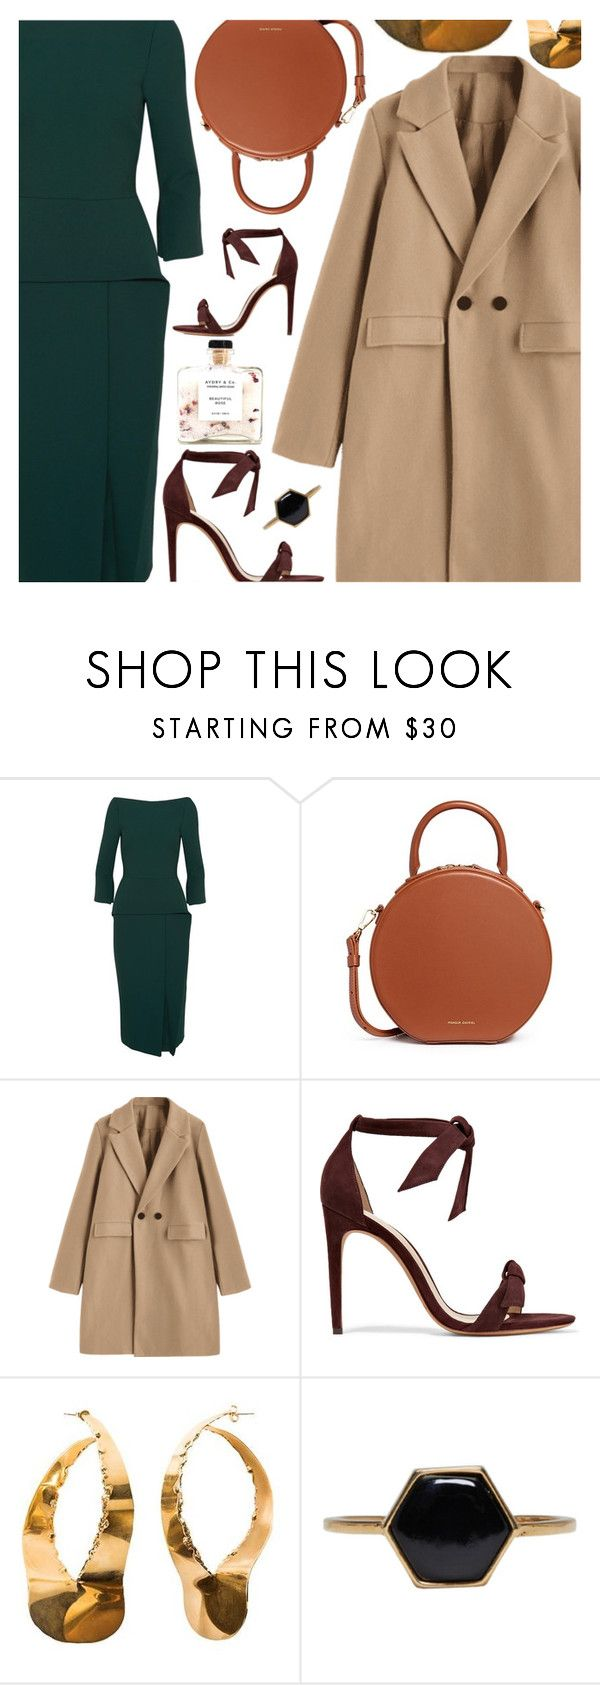 """Untitled #6631"" by amberelb ❤ liked on Polyvore featuring Roland Mouret, Mansur Gavriel, Alexandre Birman and Isabel Marant"